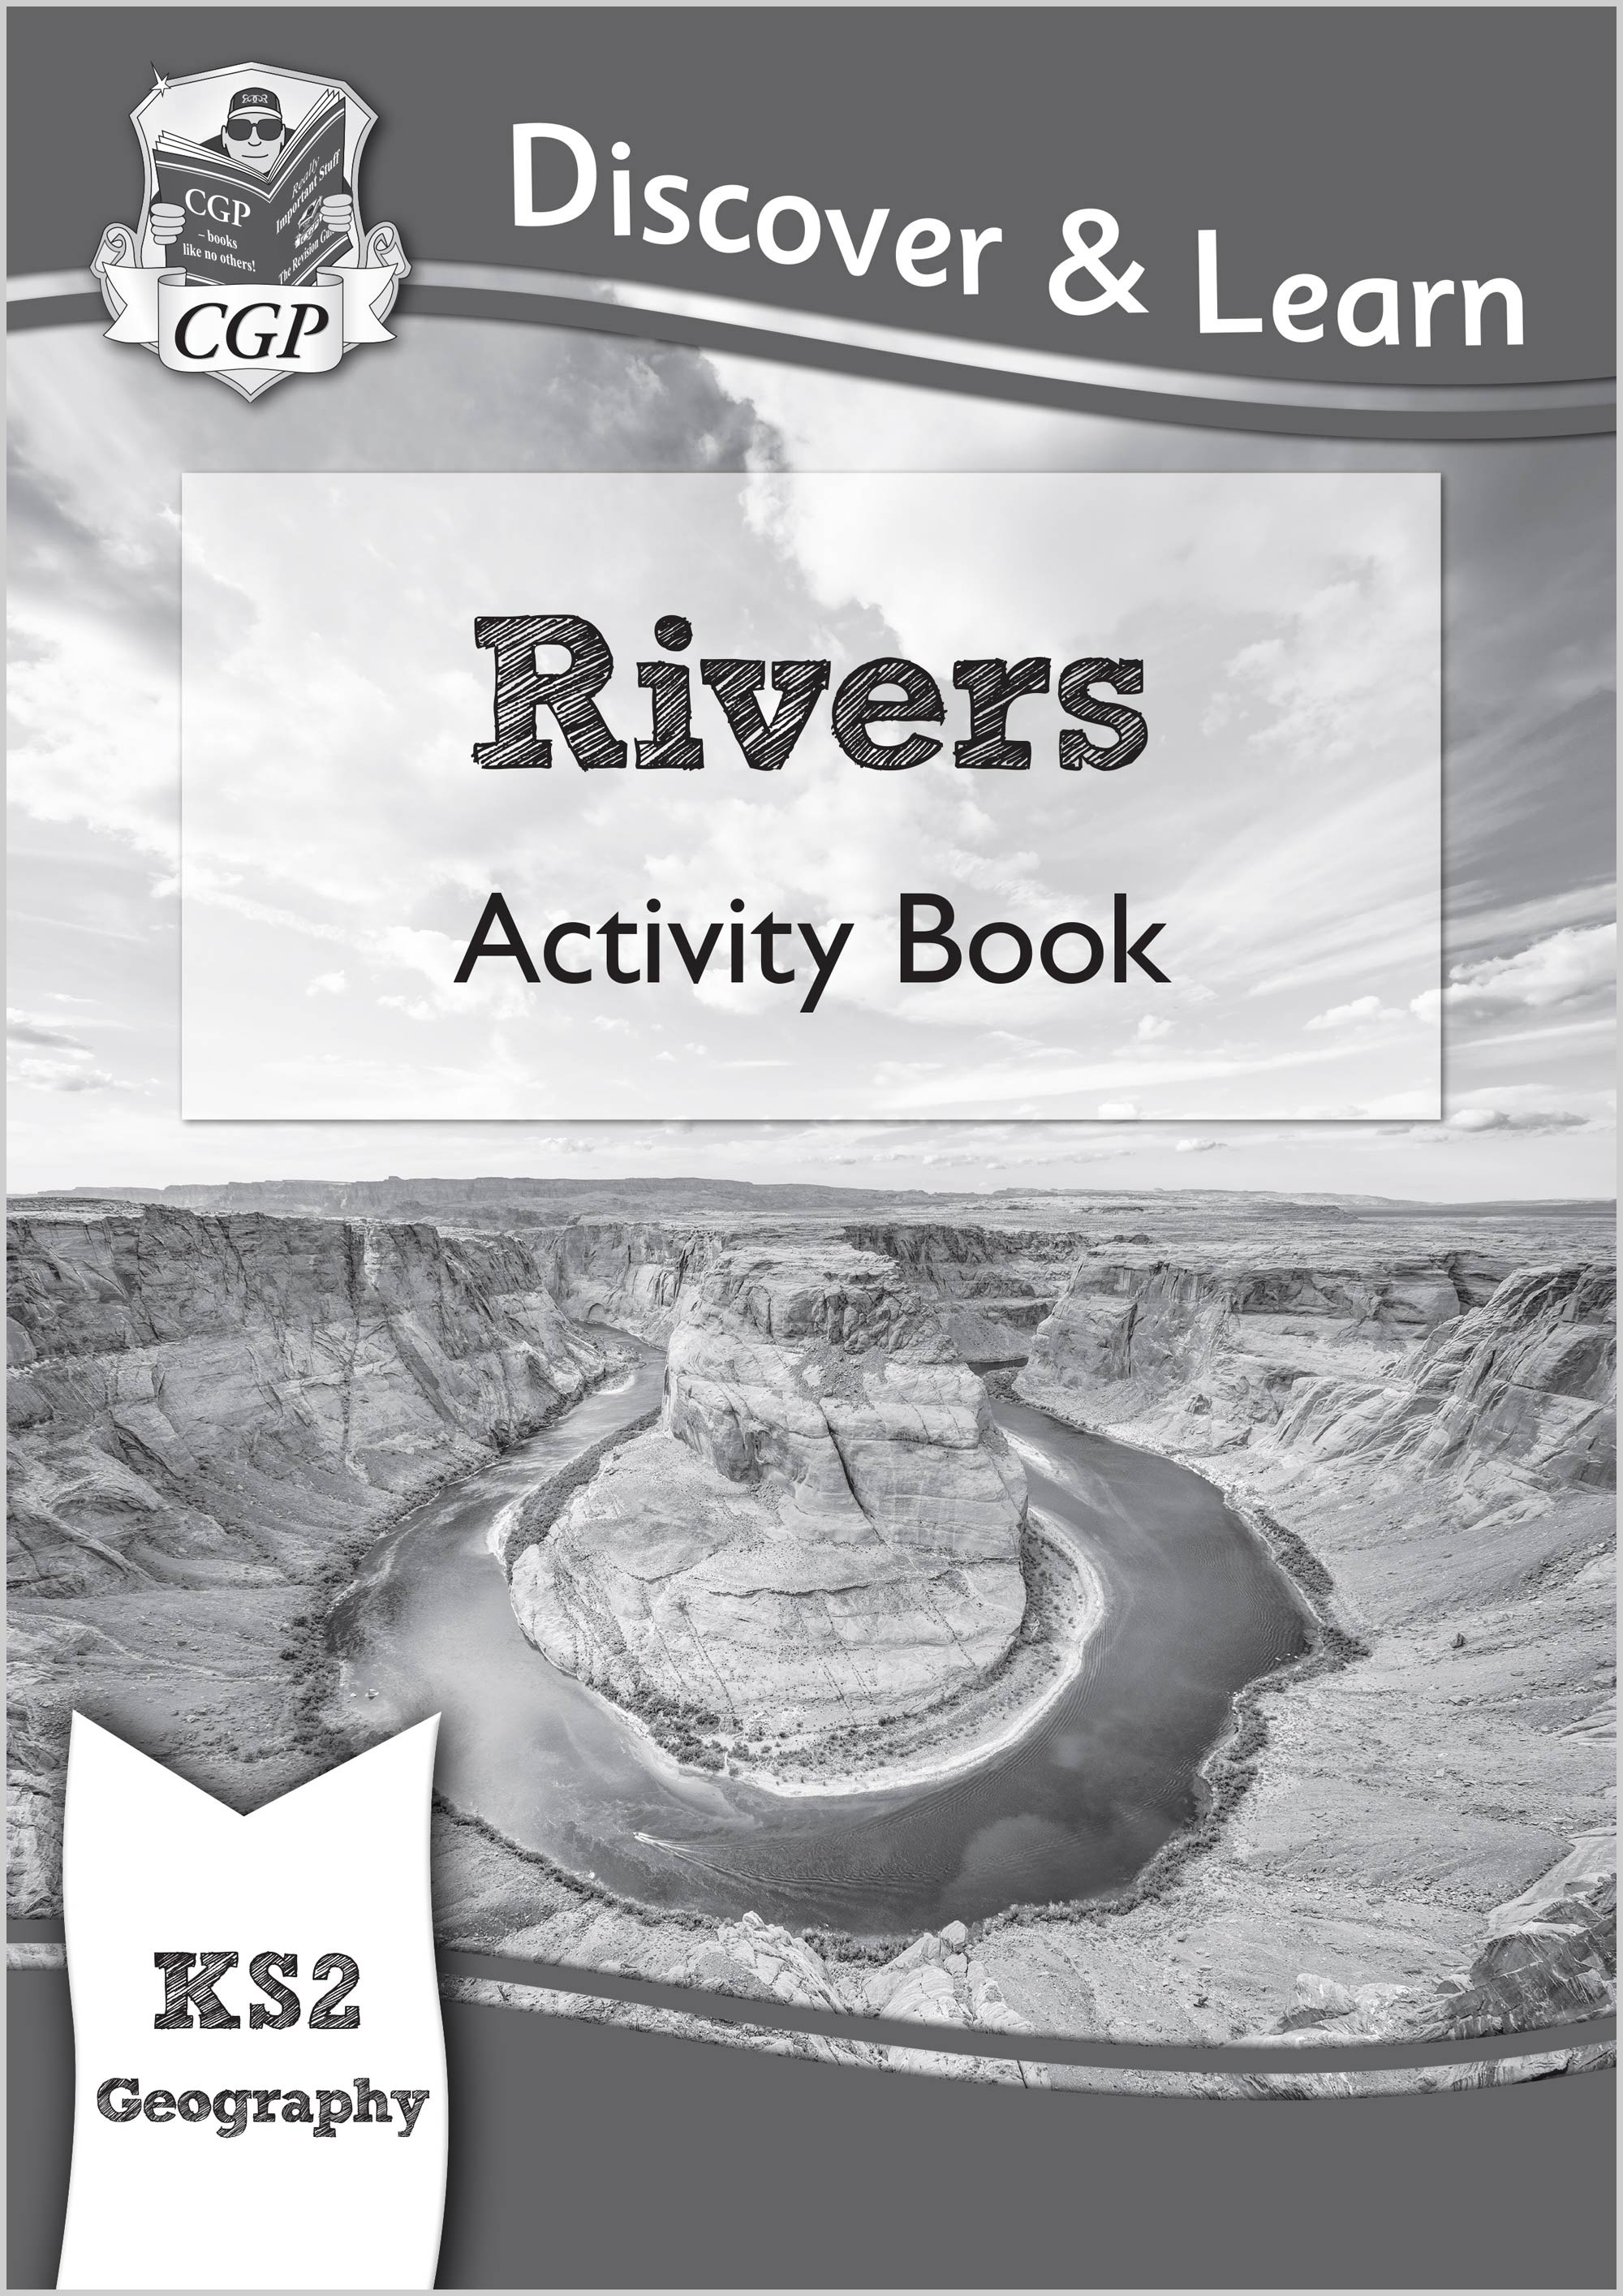 GRW21 - New KS2 Discover & Learn: Geography - Rivers Activity Book